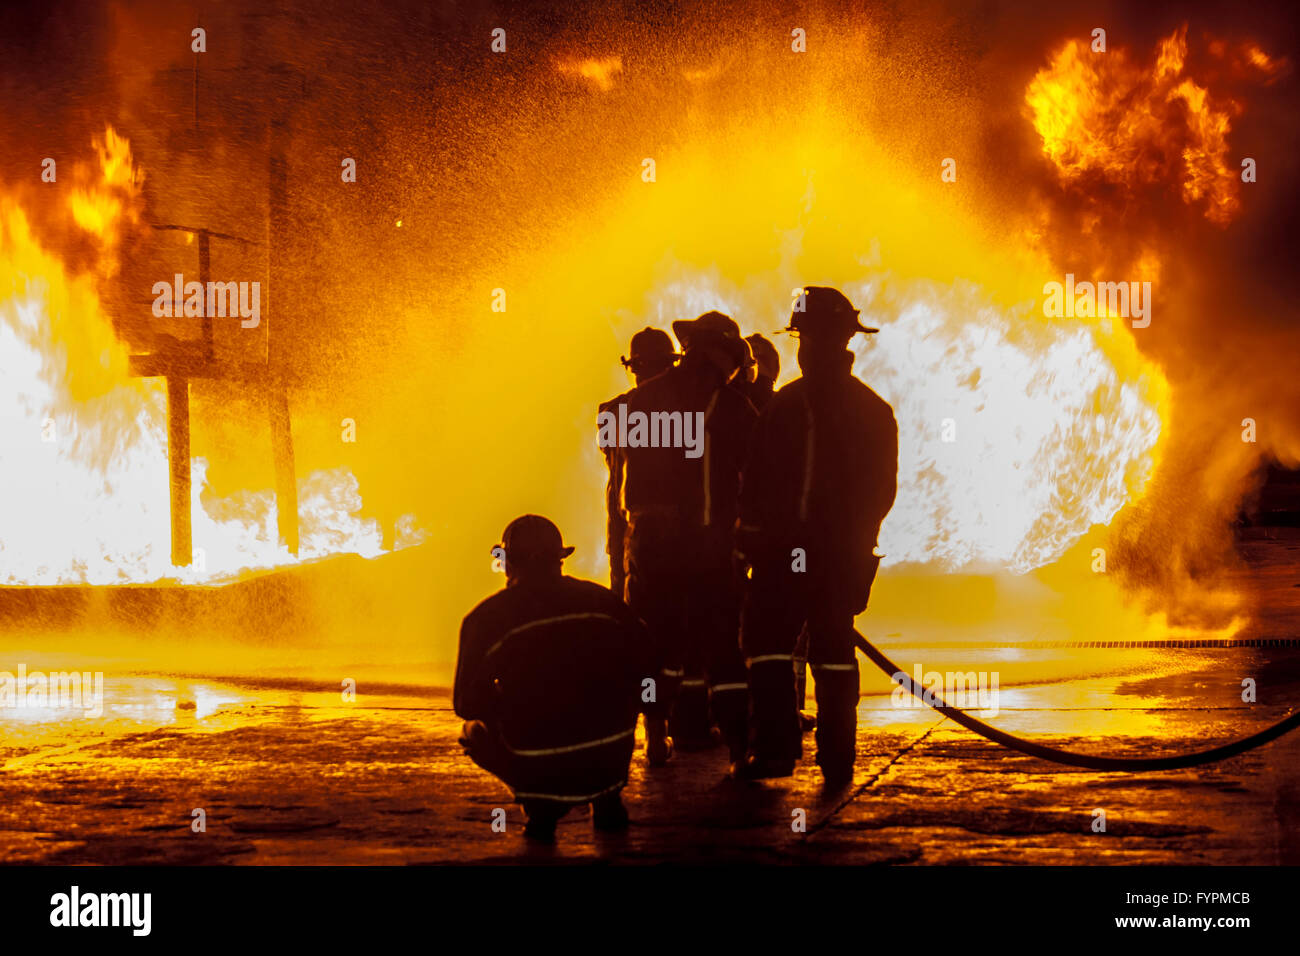 Firefighters spraying down burning structure - Stock Image